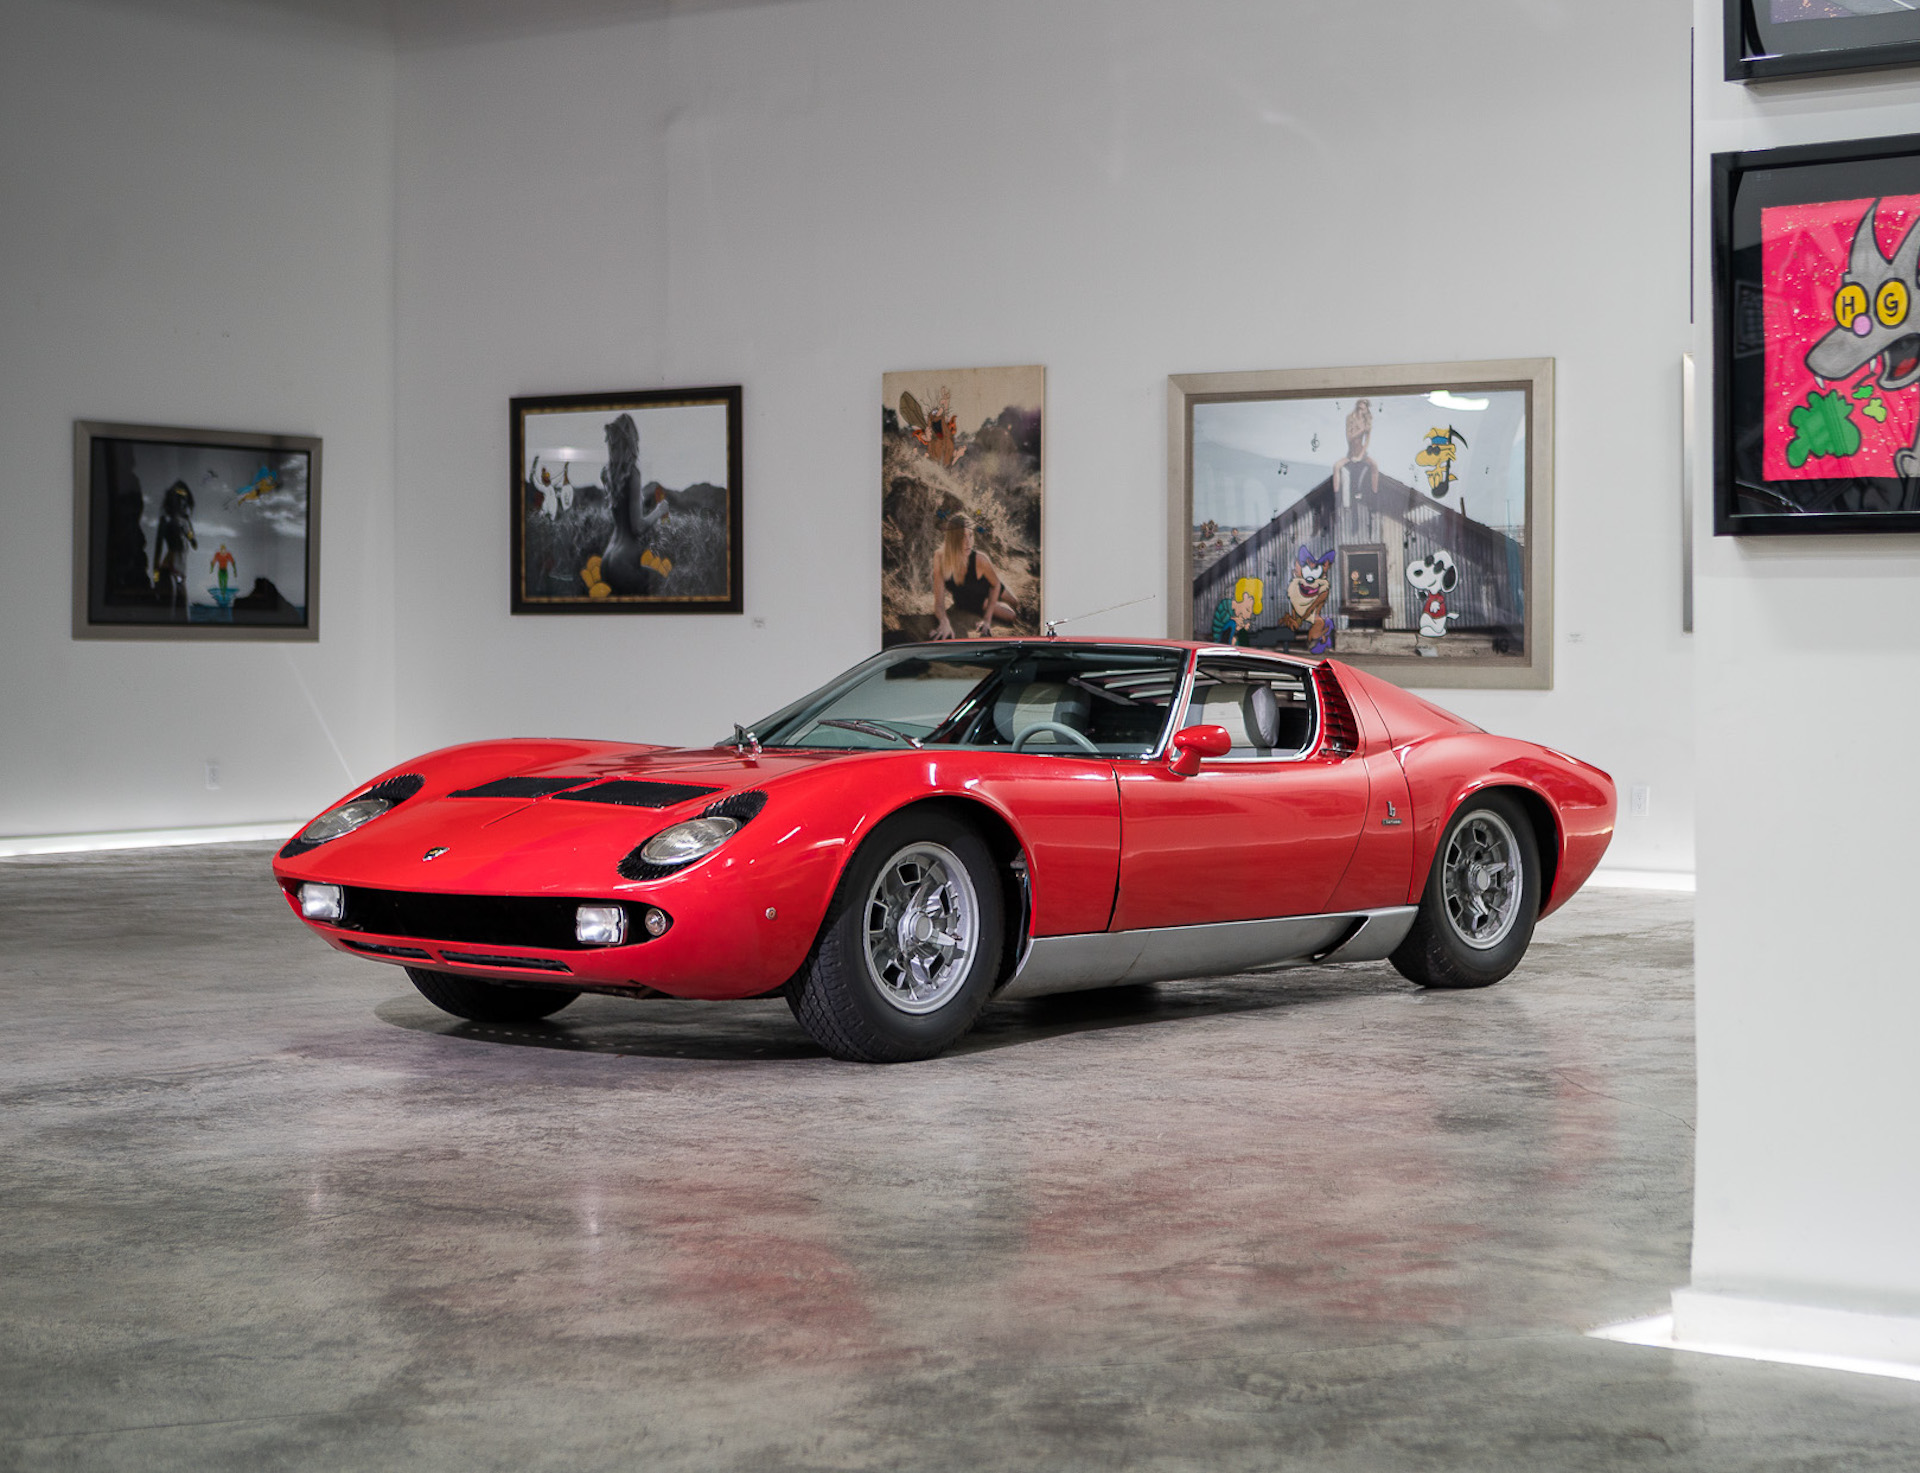 a red lamborghini Miura S parked in a gallery on display